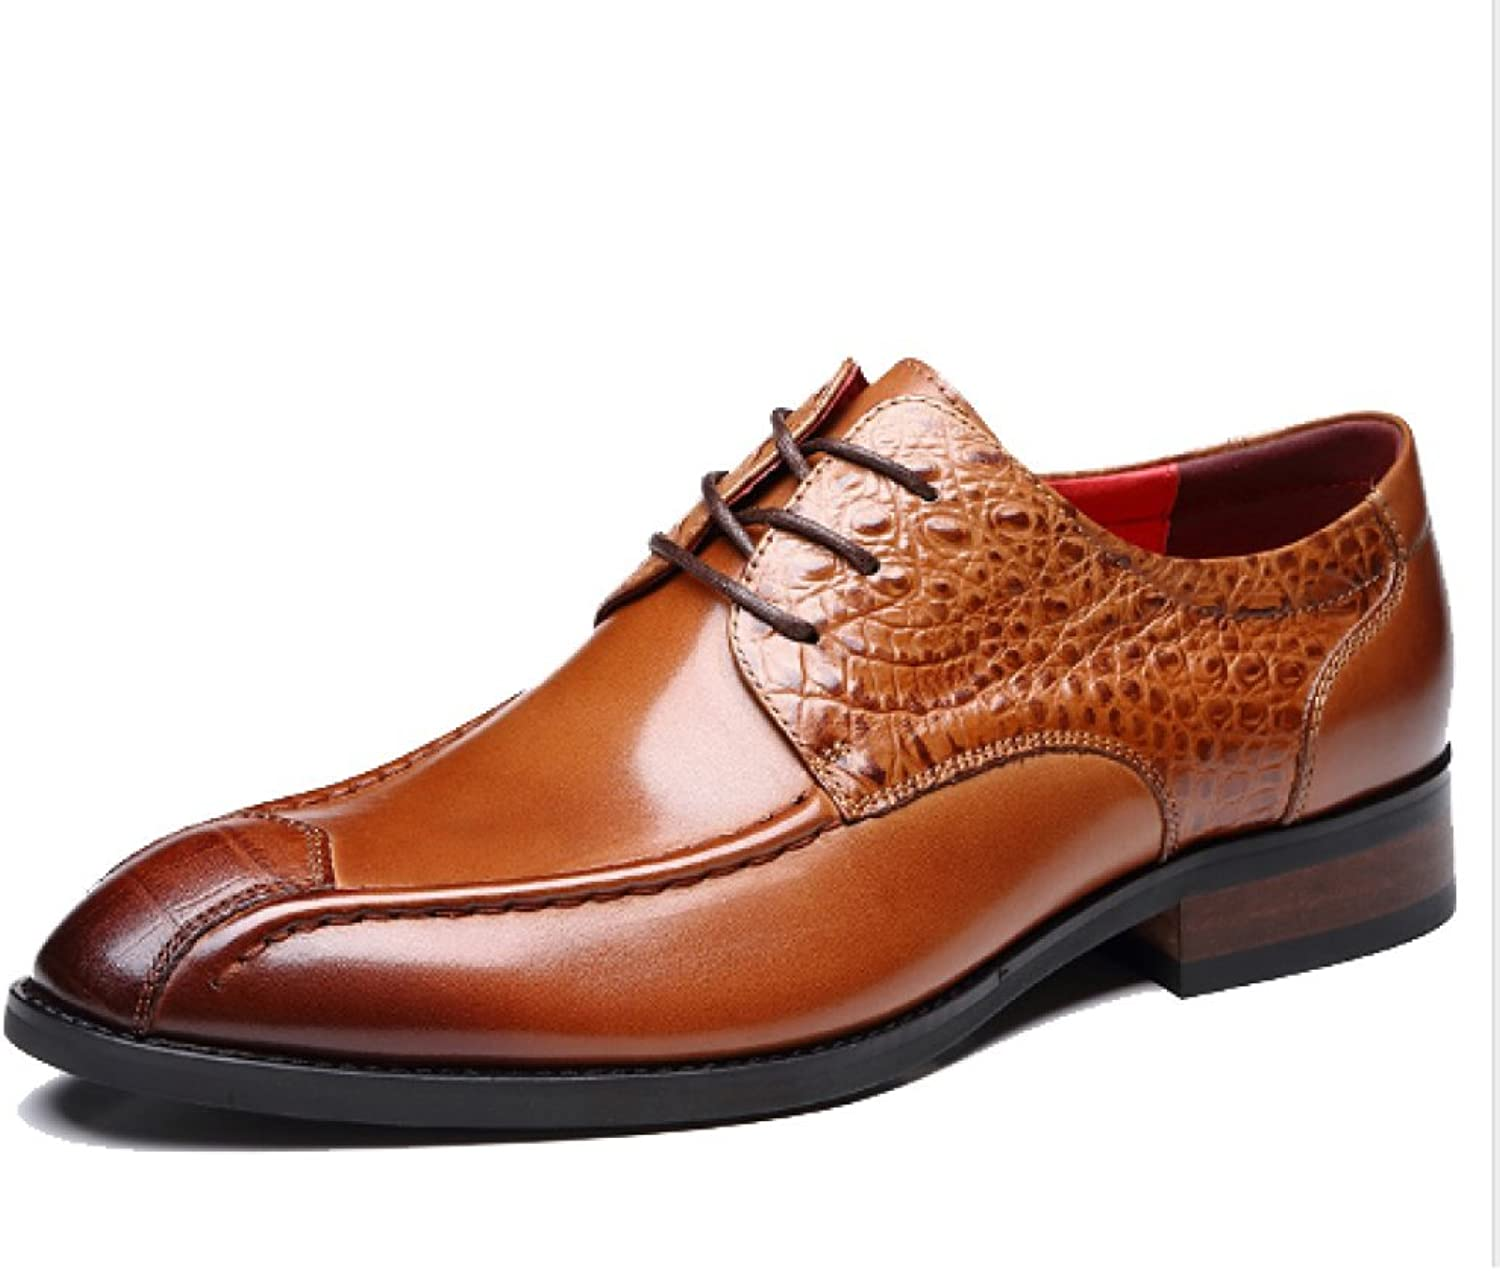 NIUMJ Men's Leather shoes Autumn High-end Handmade shoes Pointed Business Formal Fashion Trend